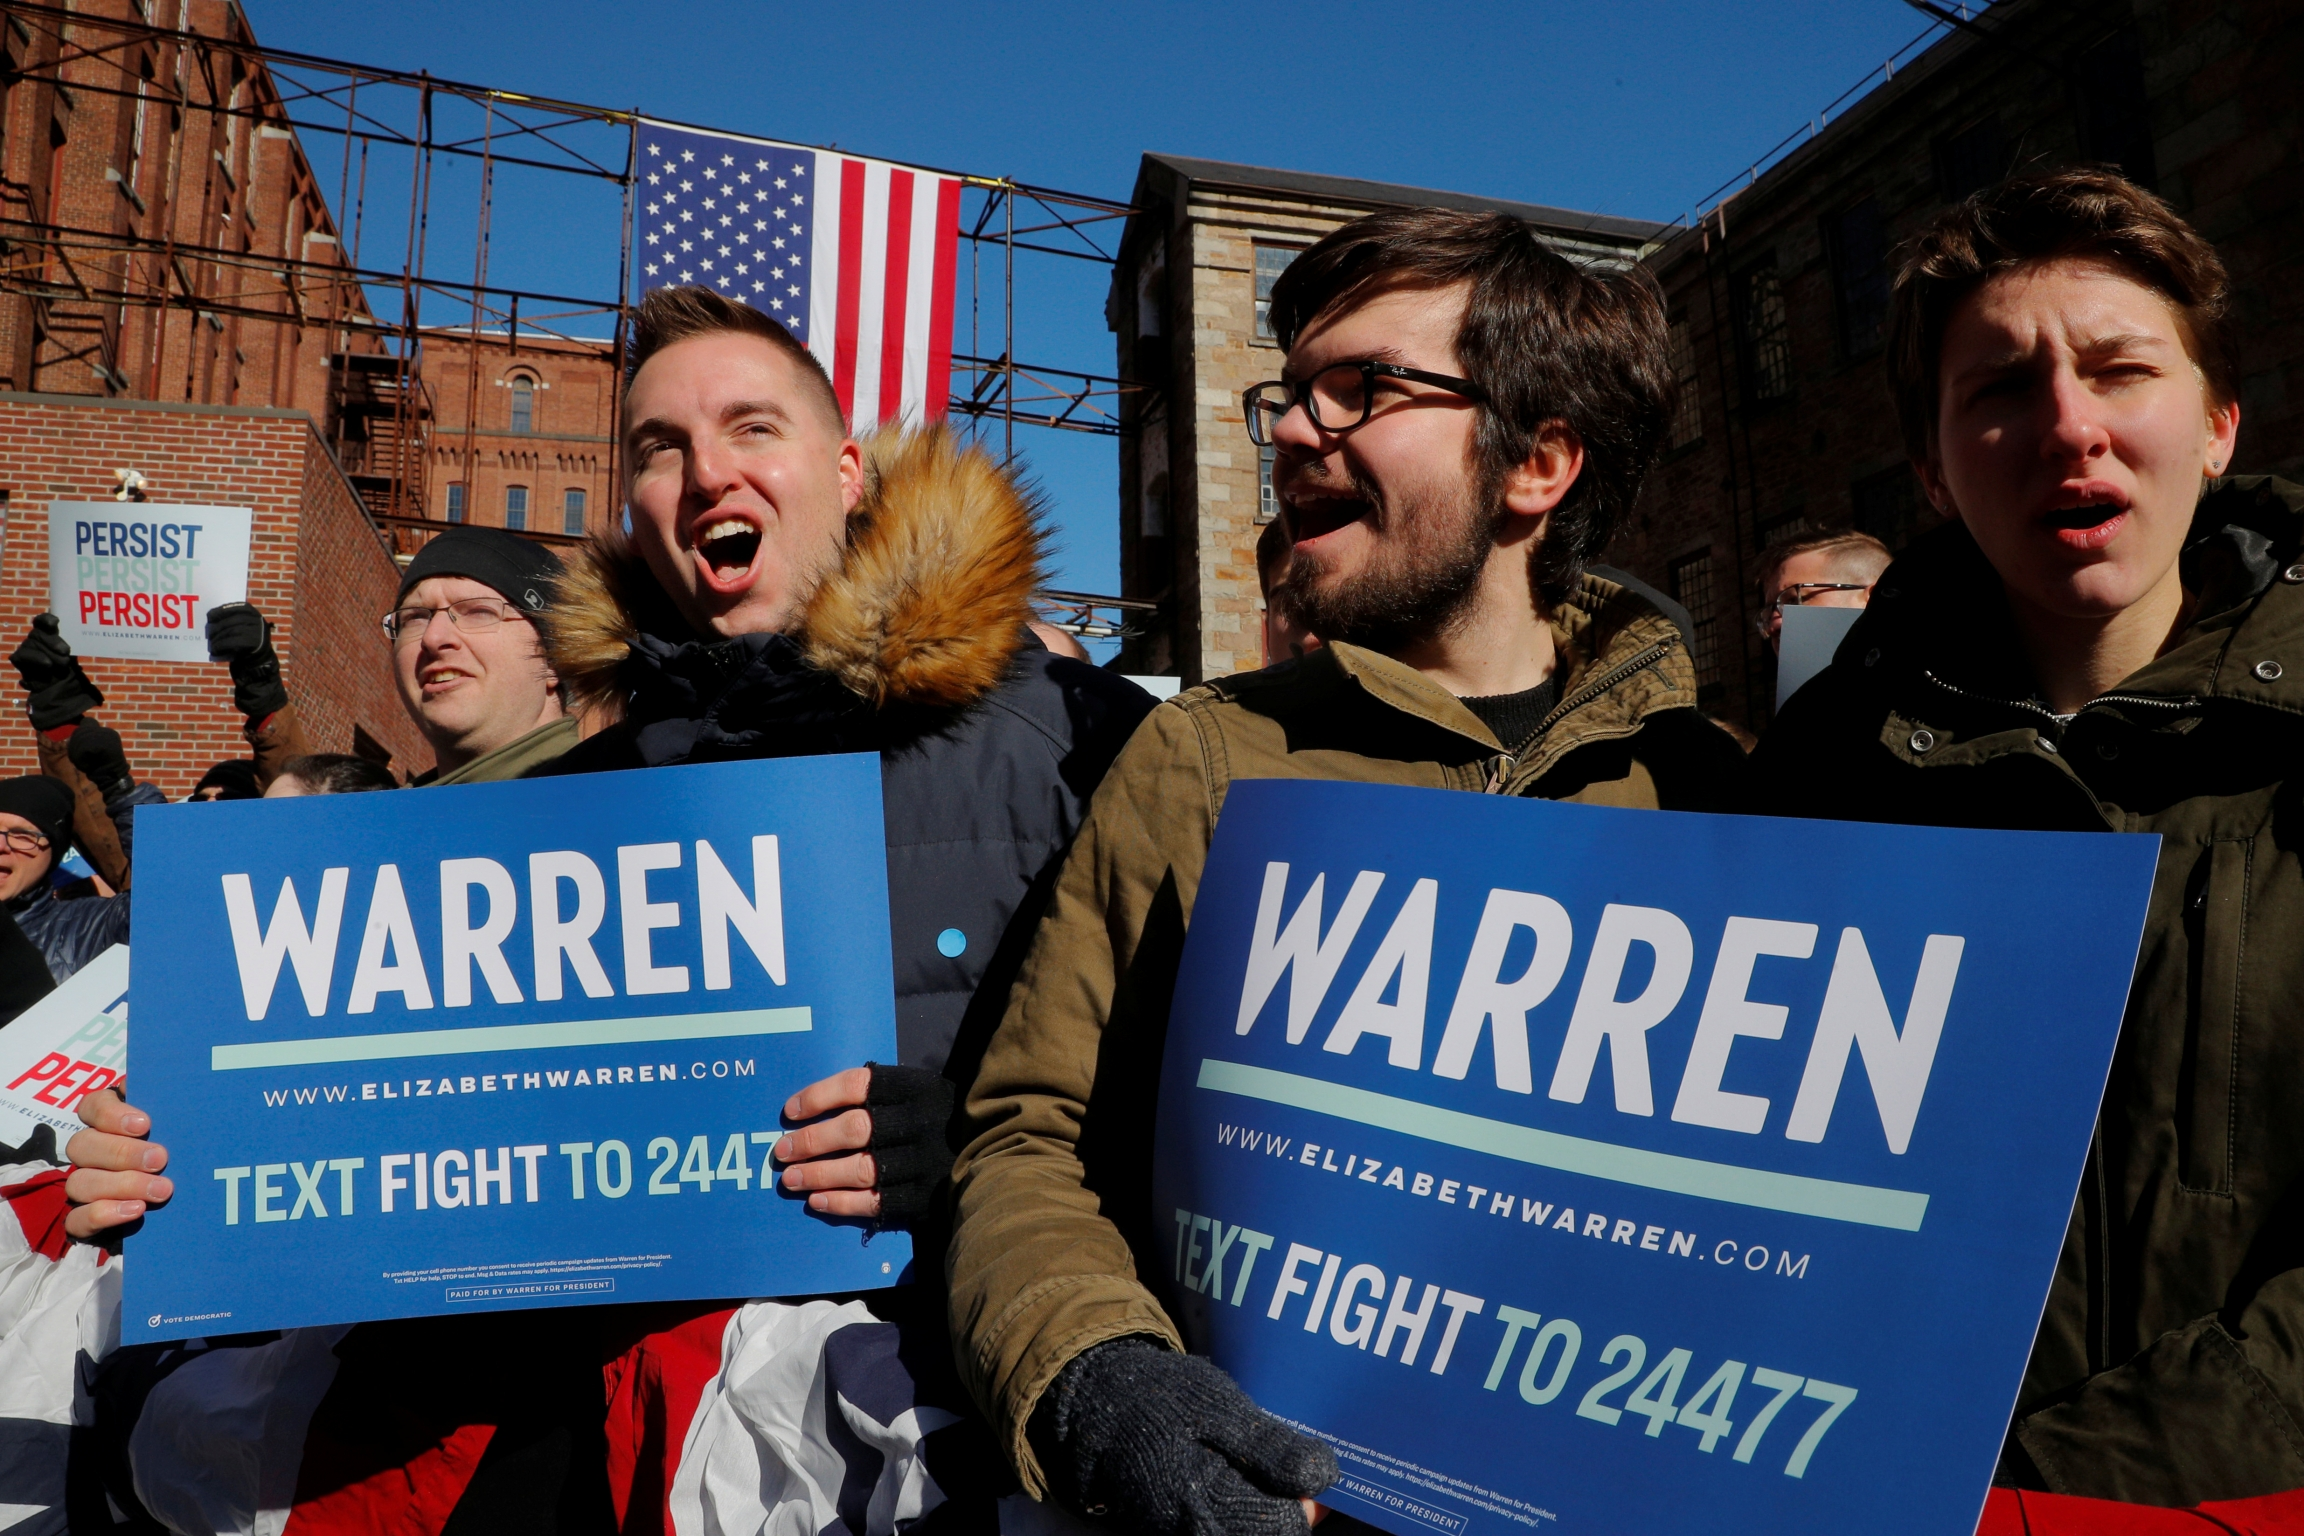 Young men hold campaign signs for Elizabeth Warren.